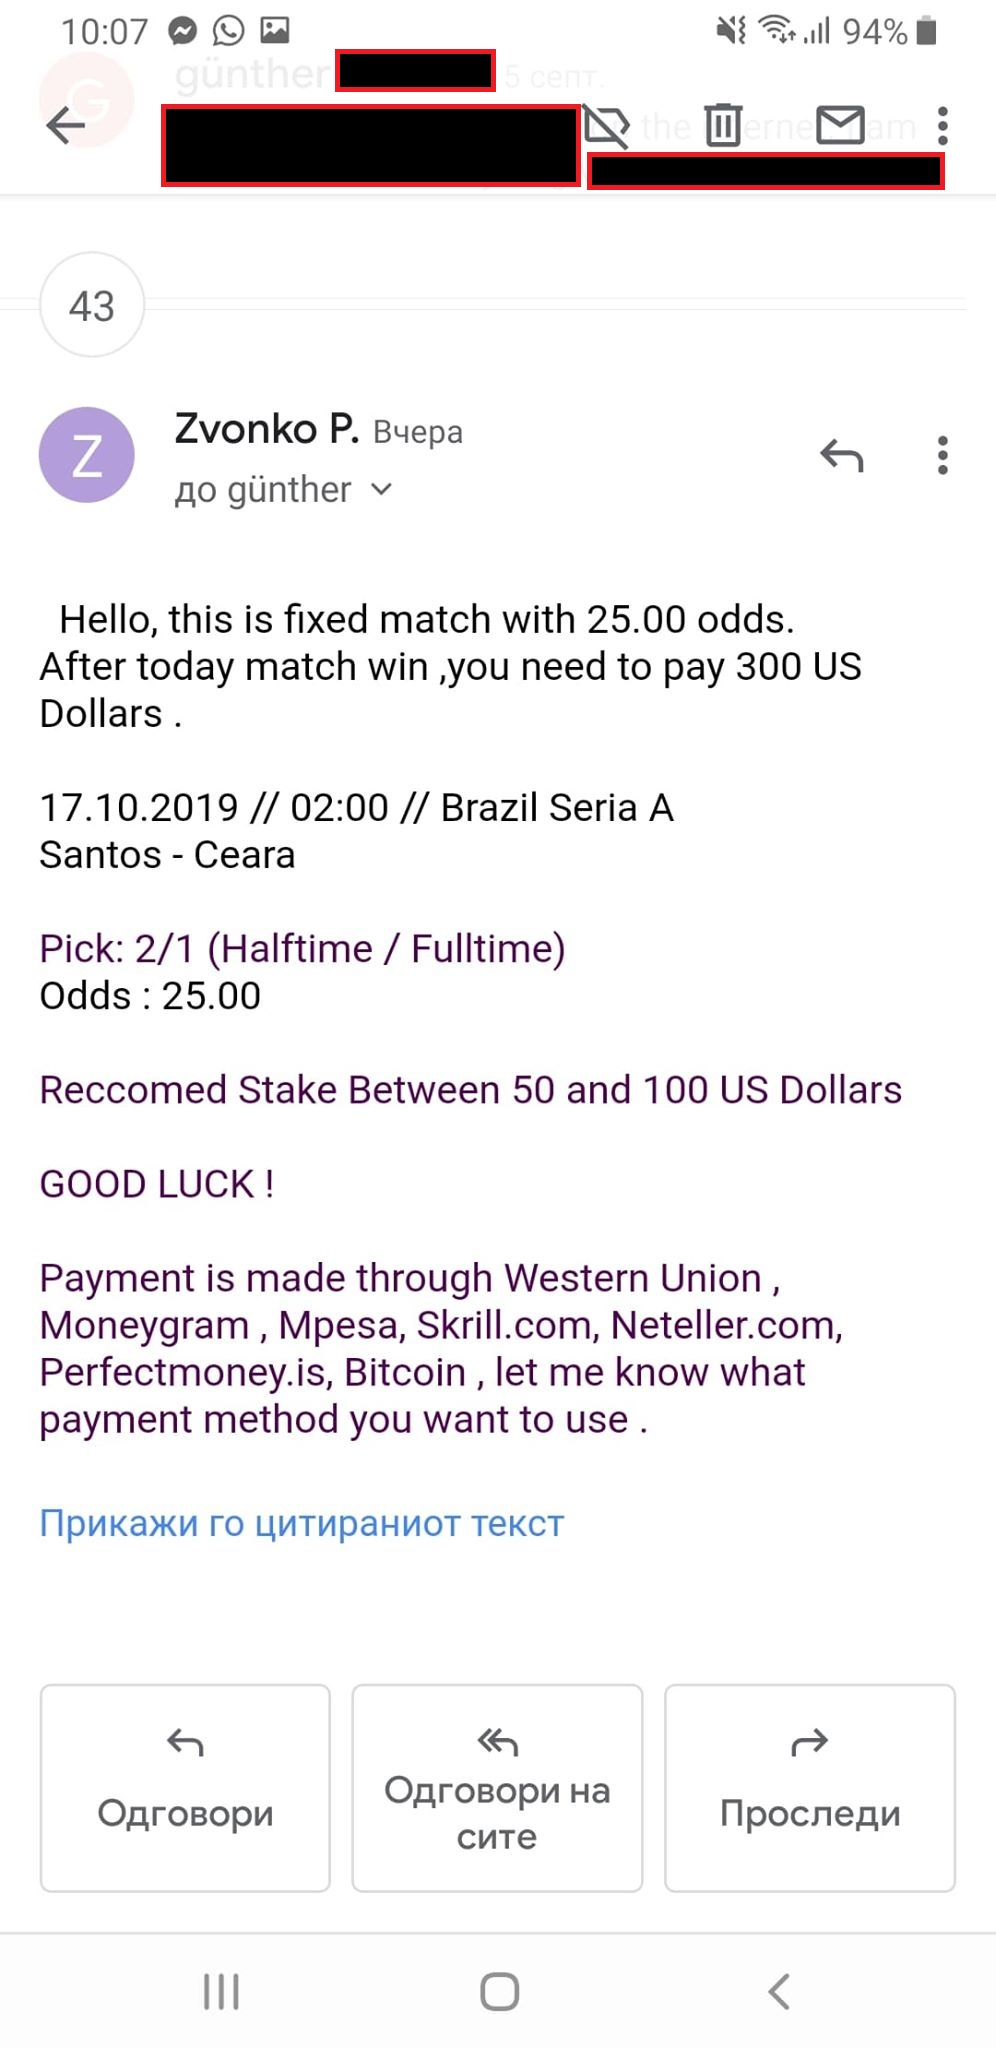 Pay after win 17 10 2019 Pay after winning fixed match 100 sure win half time full time , rigged manipulated fixed matches 100 sure wins payment after win-client1